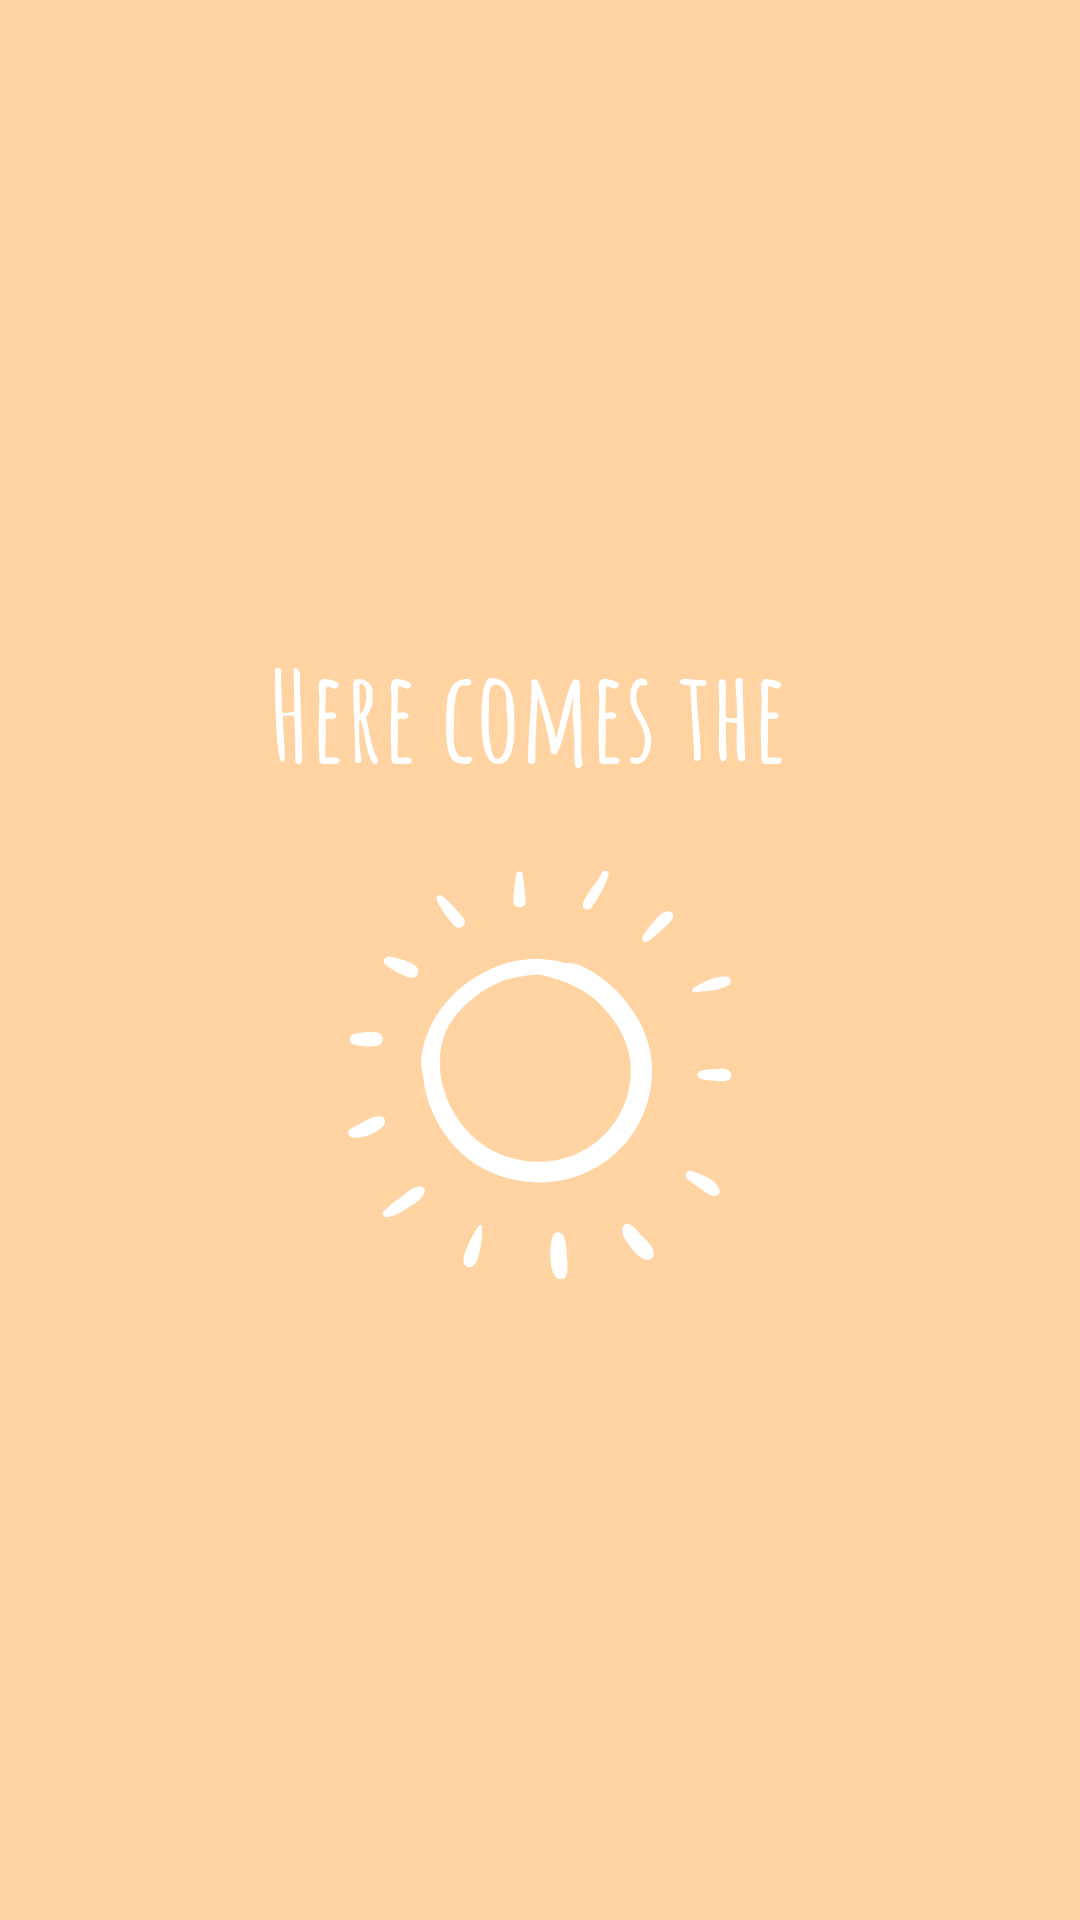 Here Comes The Sun Positive Wallpapers Colorful Wallpaper Cute Kawaii Drawings